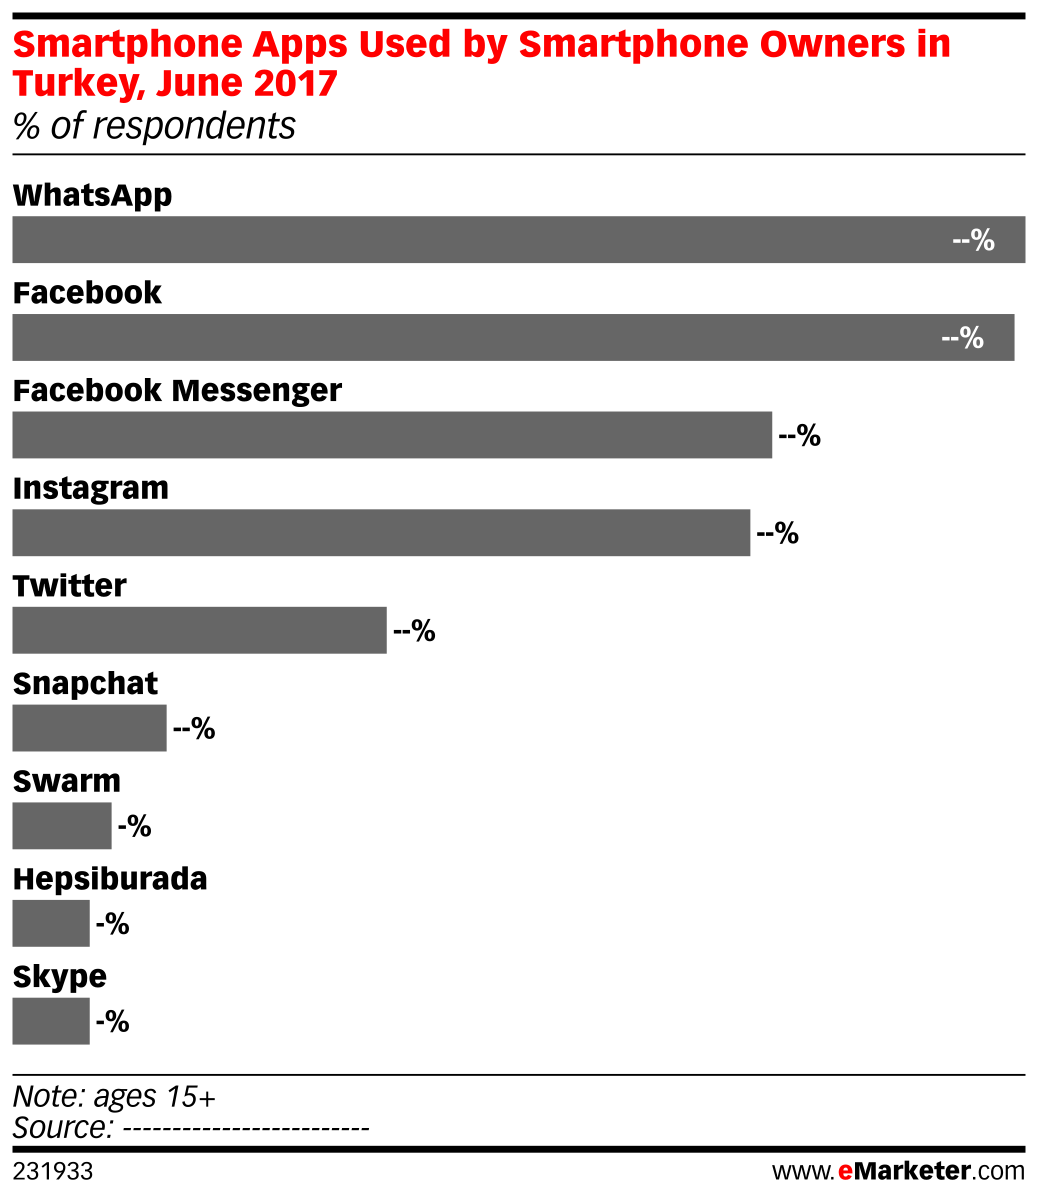 Smartphone Apps Used by Smartphone Owners in Turkey, June 2017 (% of respondents)